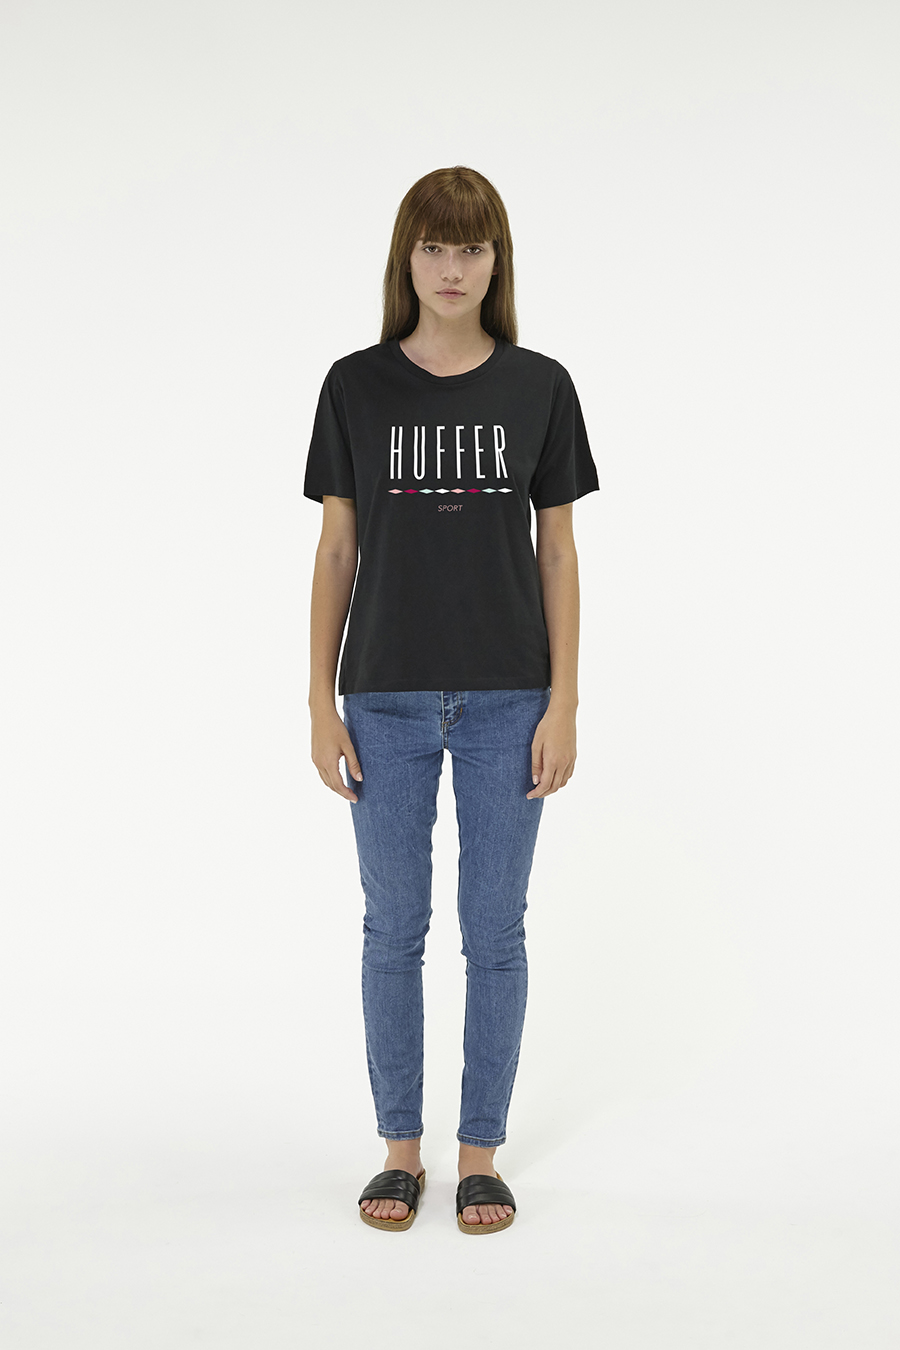 Huffer_Q3-16_W-Stella-Tee-DIAMOND_Black-01